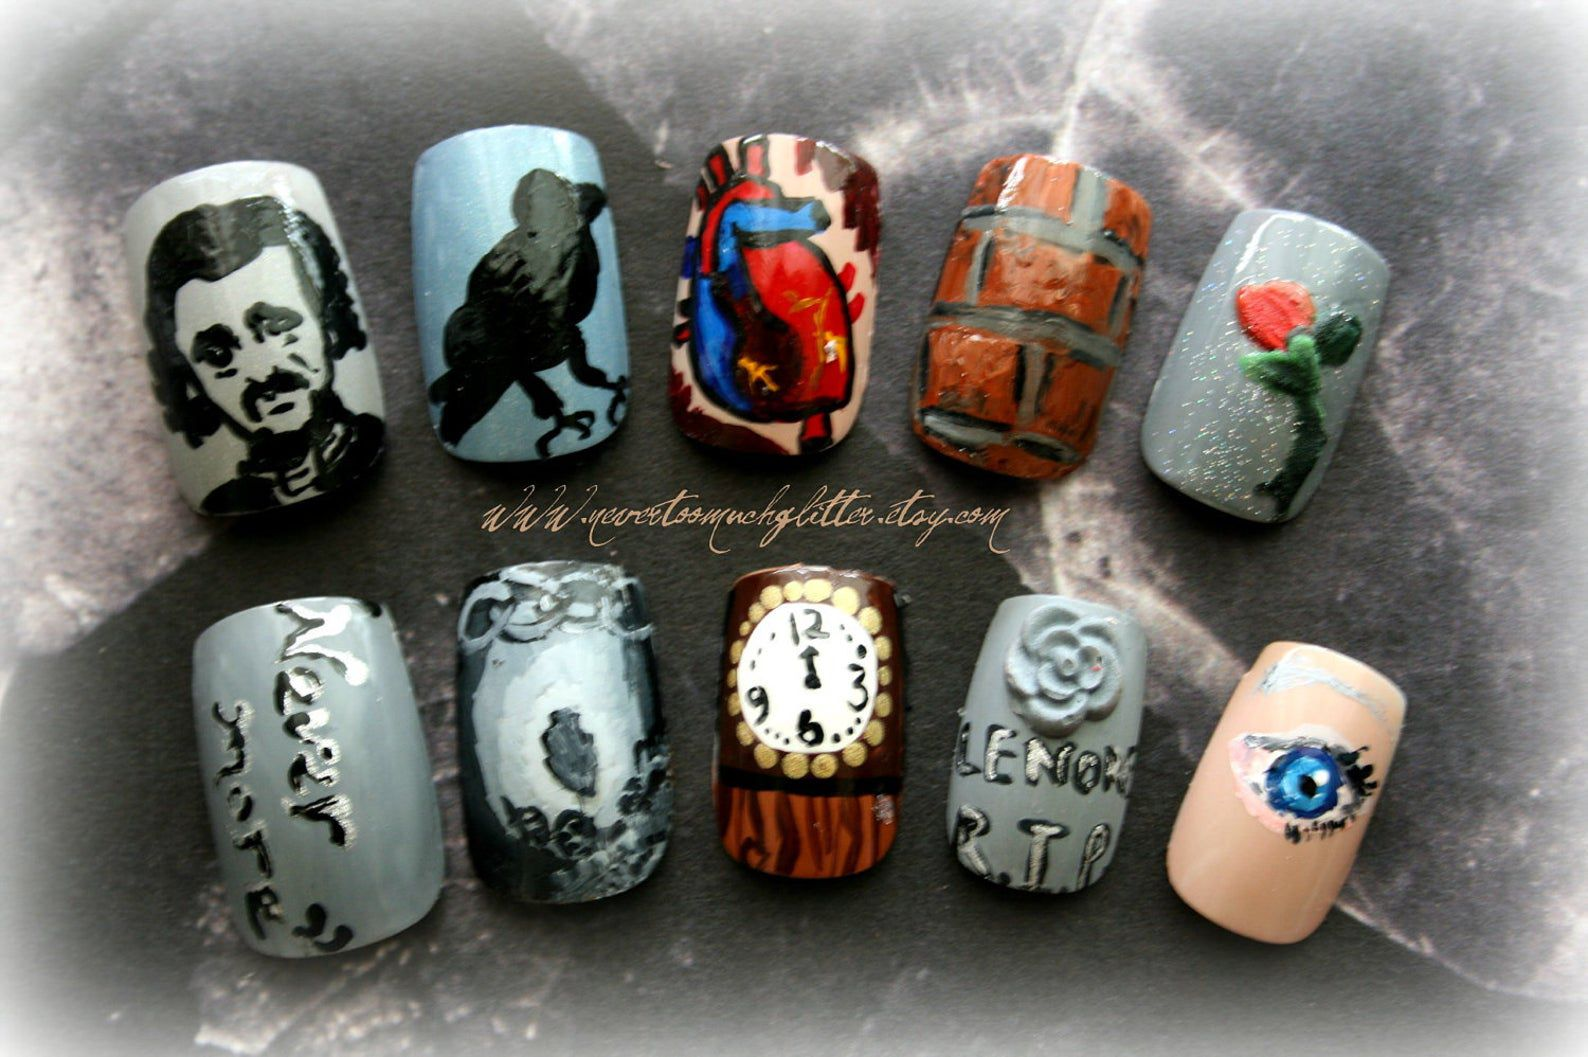 Image of nails featuring Poe, the Raven, the Tell-Tale heart, and other symbols of Poe's stories.